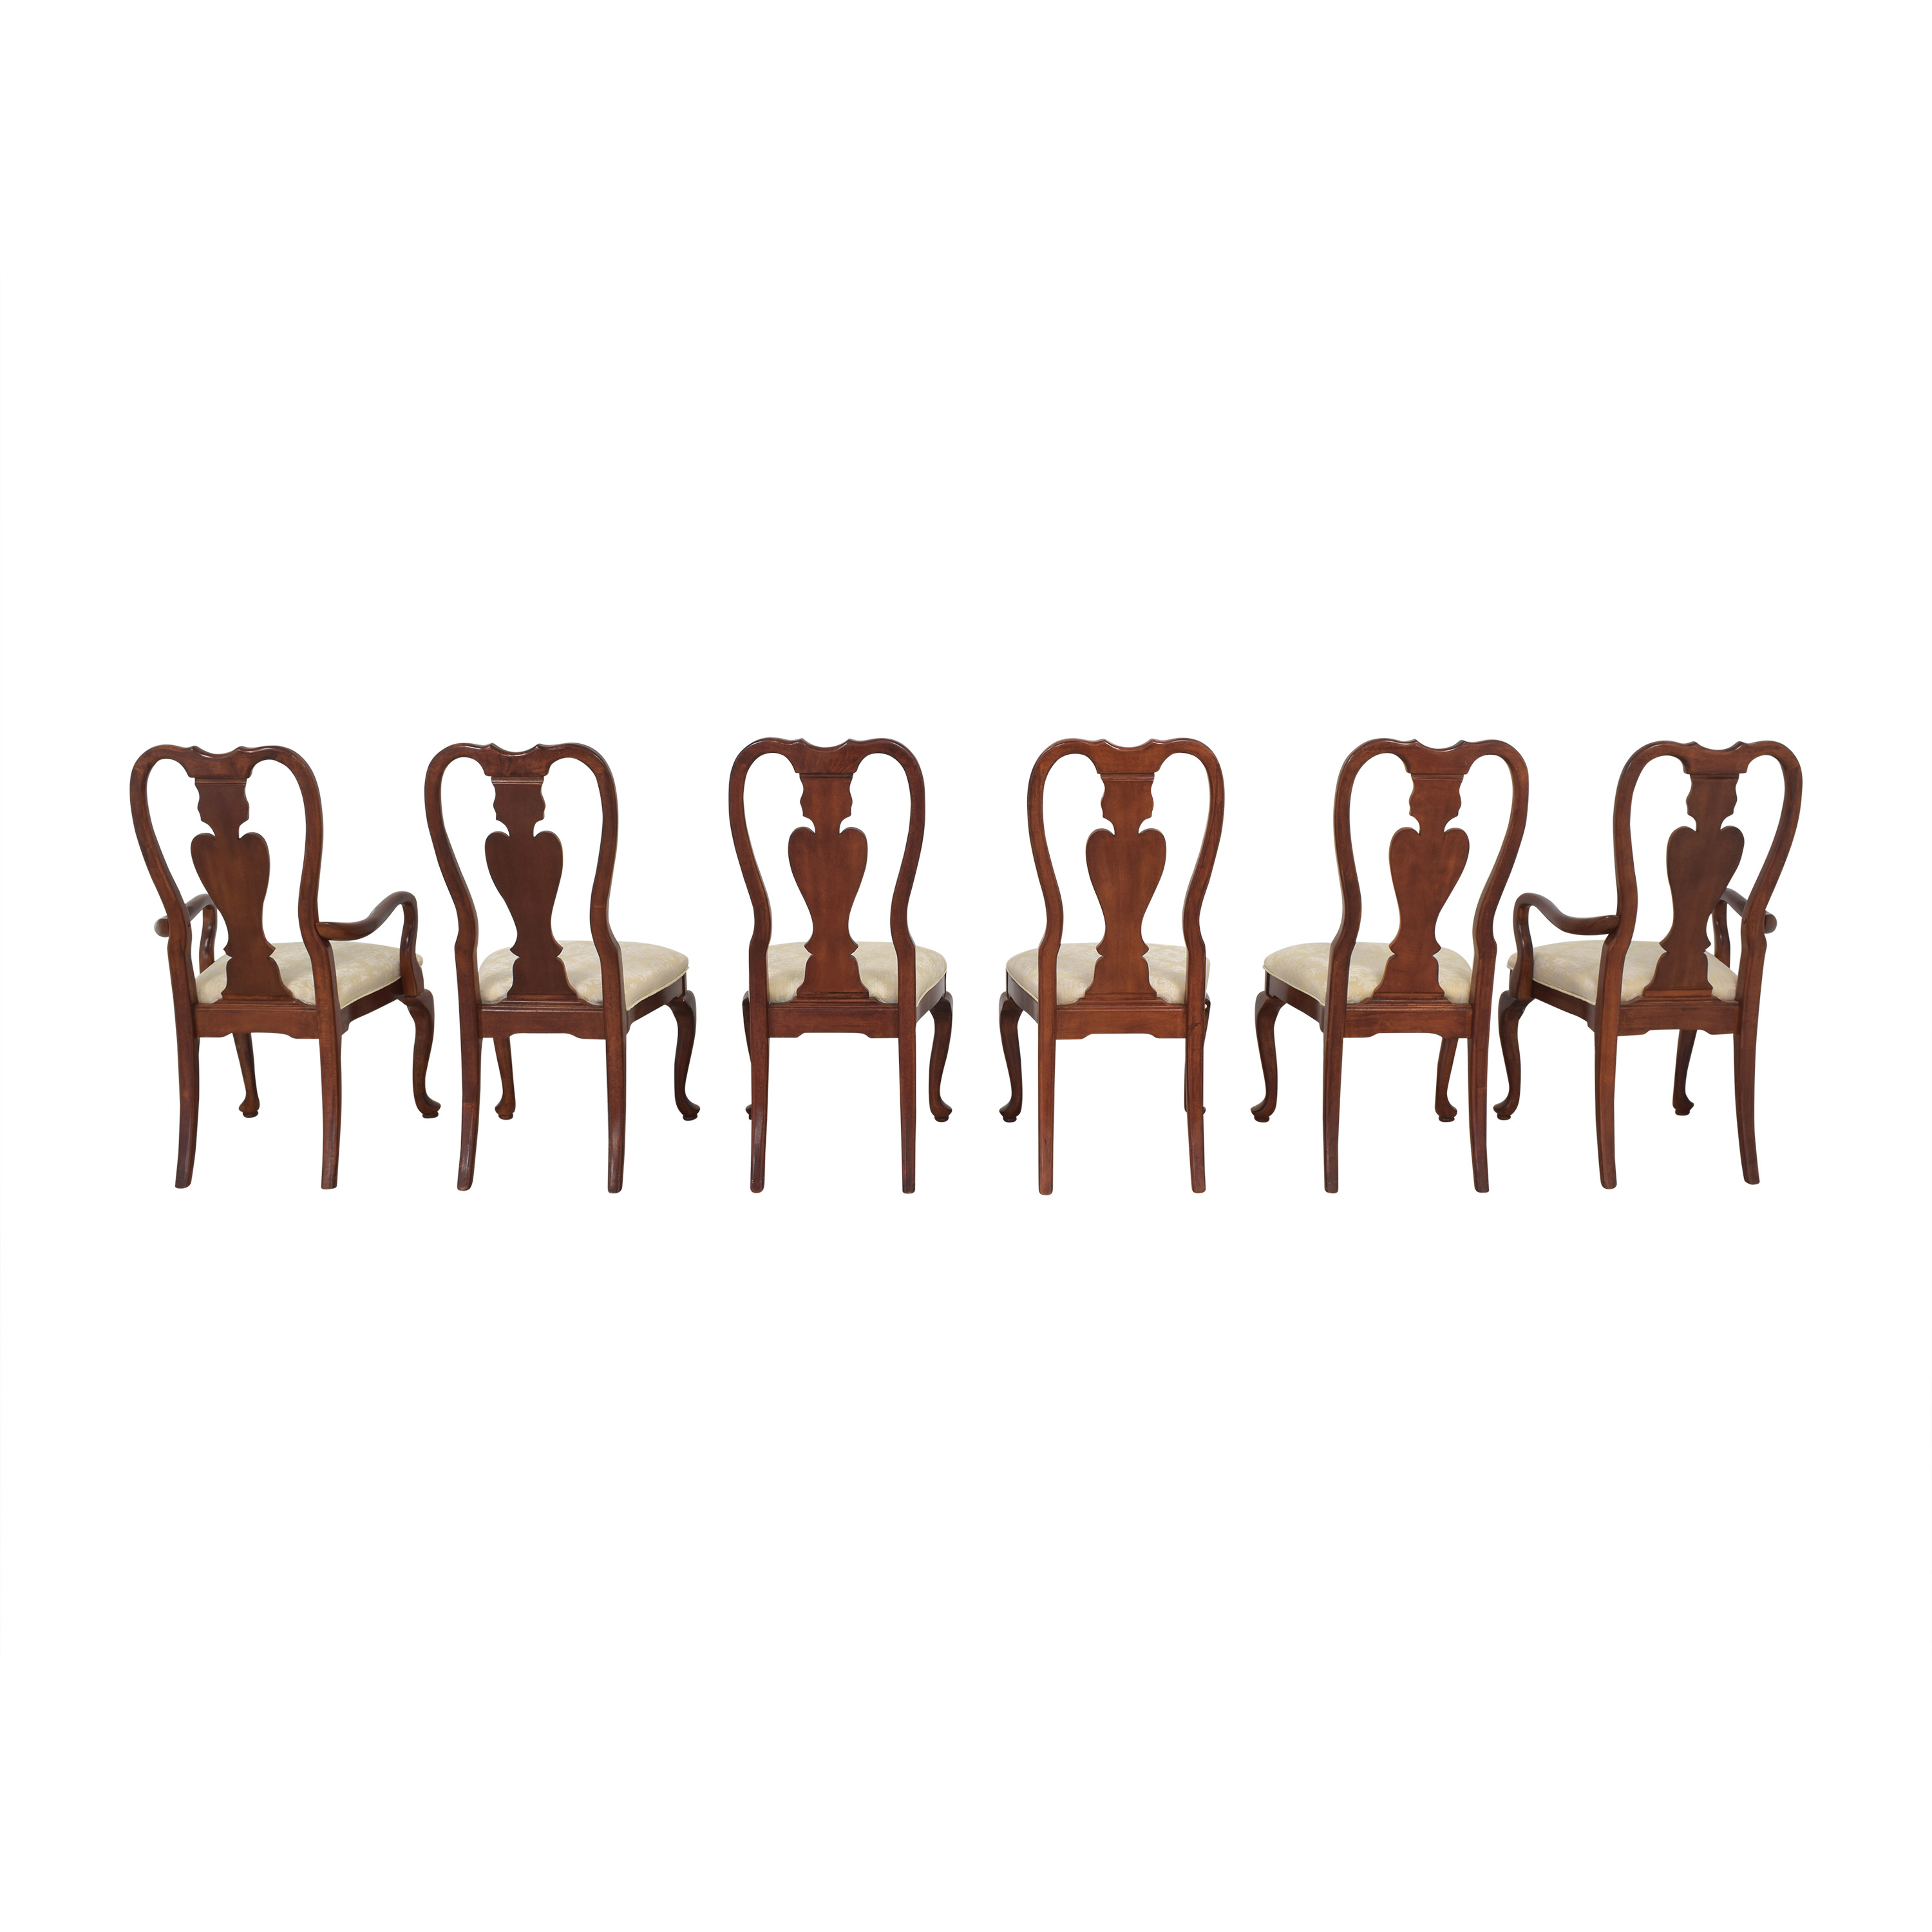 Universal Furniture Universal Furniture Queen Anne Dining Chairs used